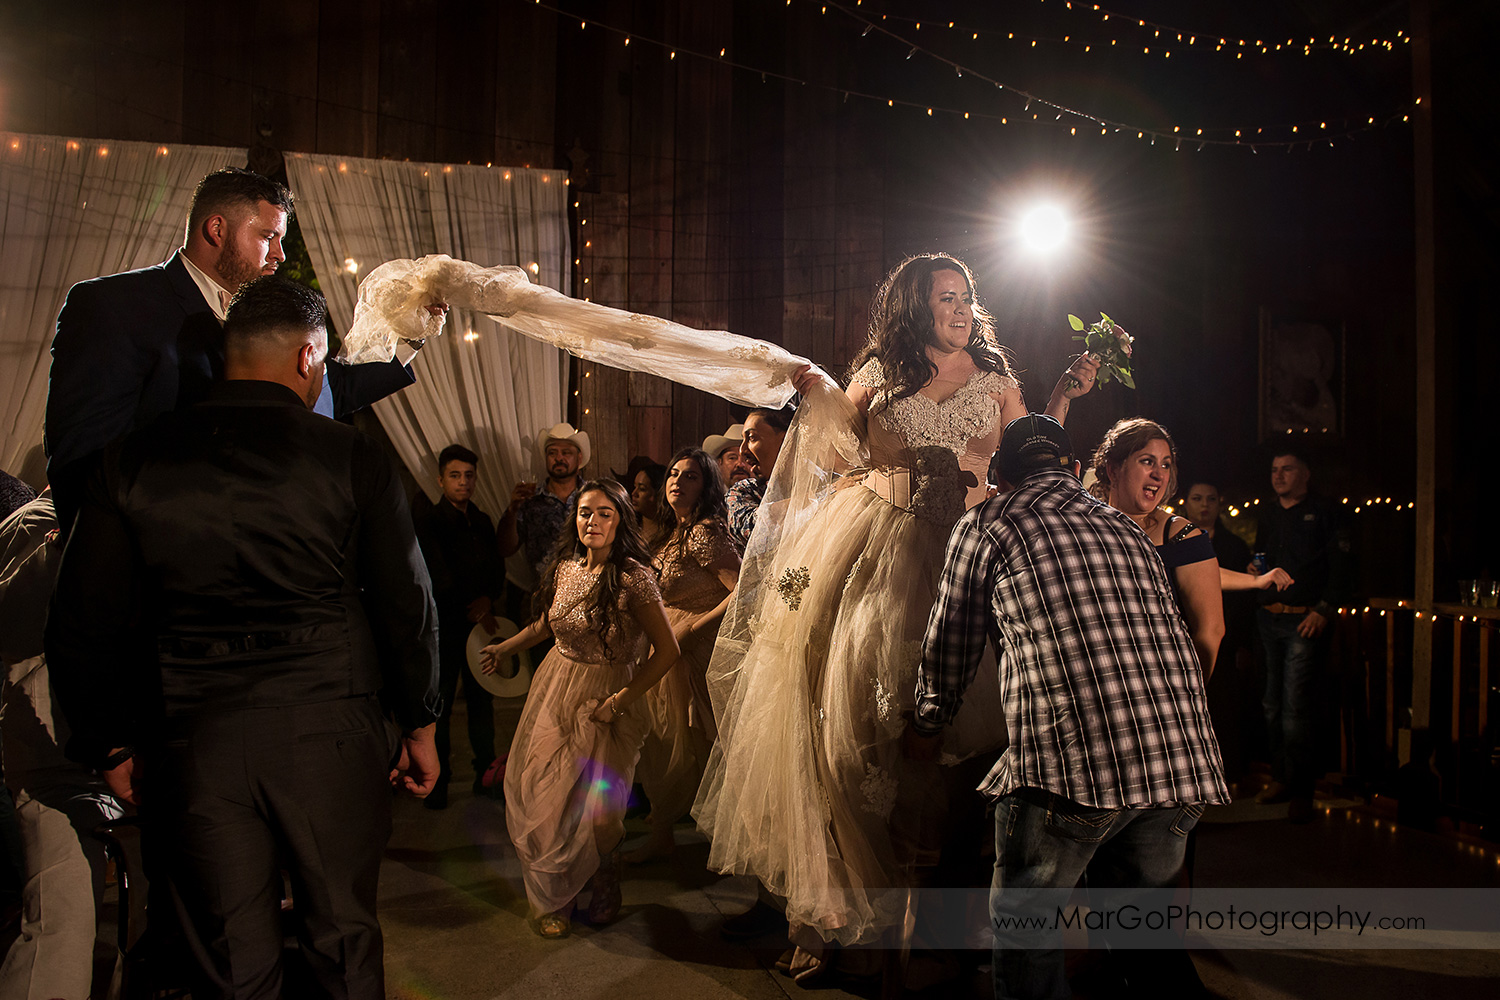 bride and groom standing on chairs during La Vibora de La Mar - the Sea Snake dance with female part of wedding guests at Taber Ranch Vineyards